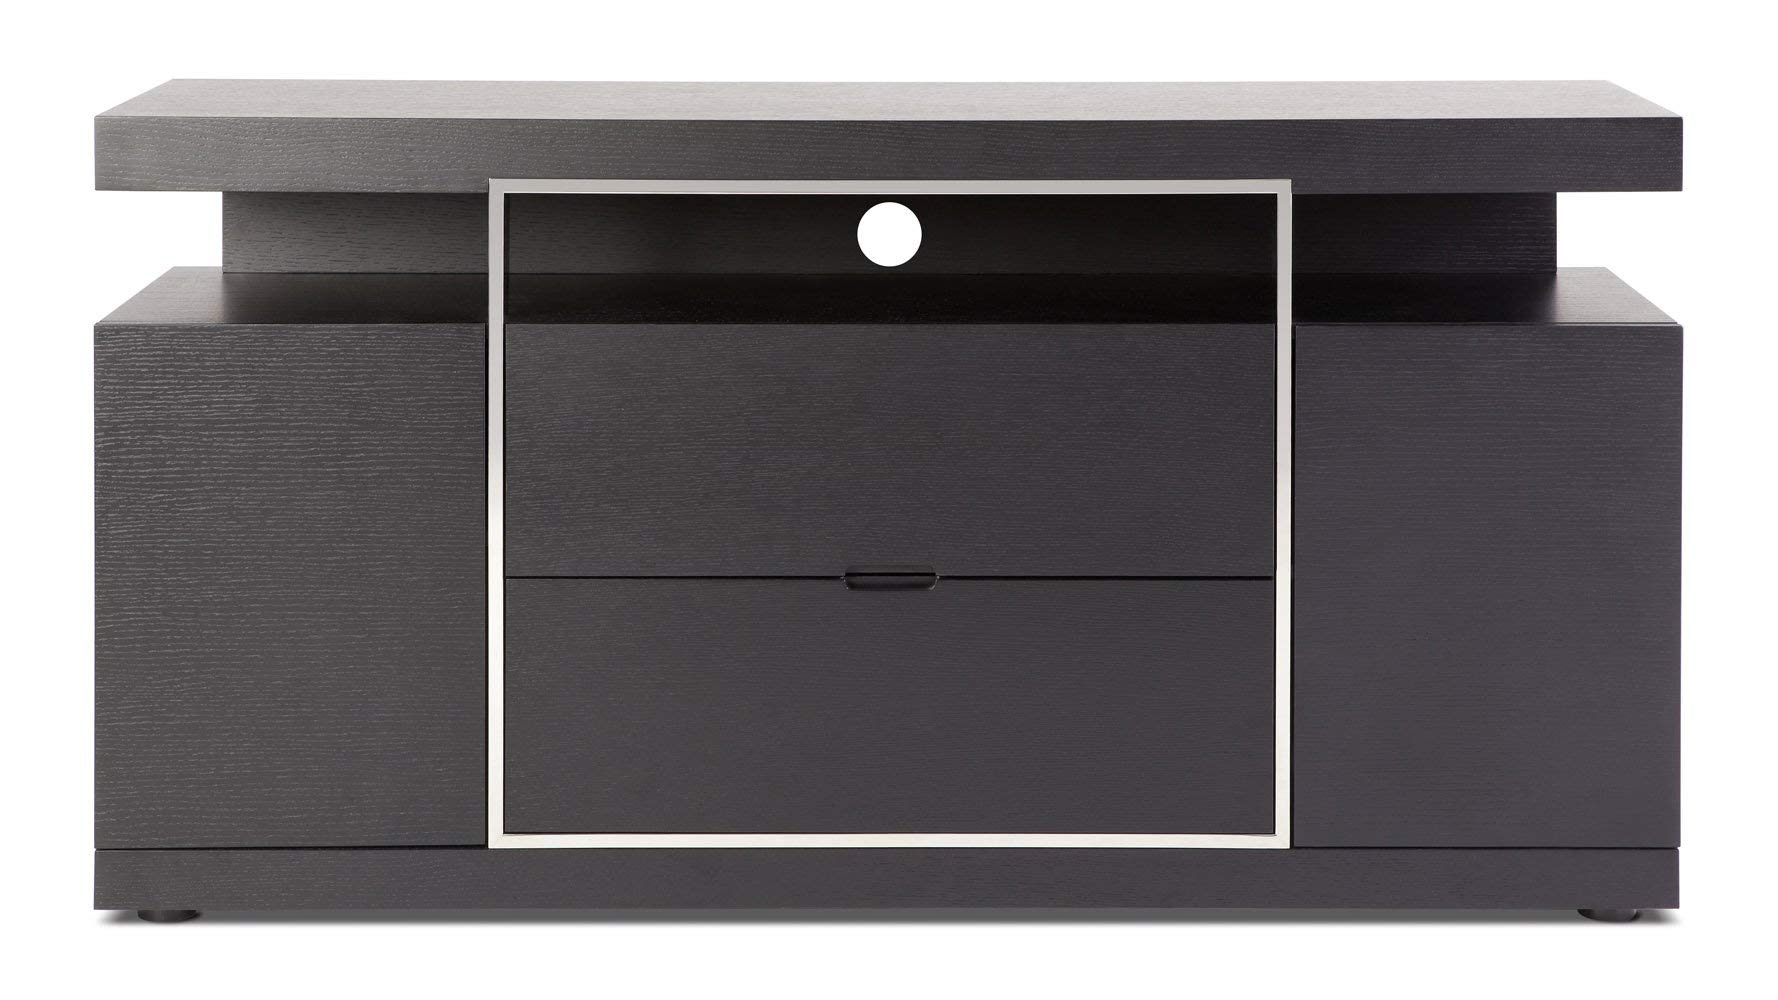 Norah Modern Espresso Wood Serving Buffet with Storage by Zuri Furniture